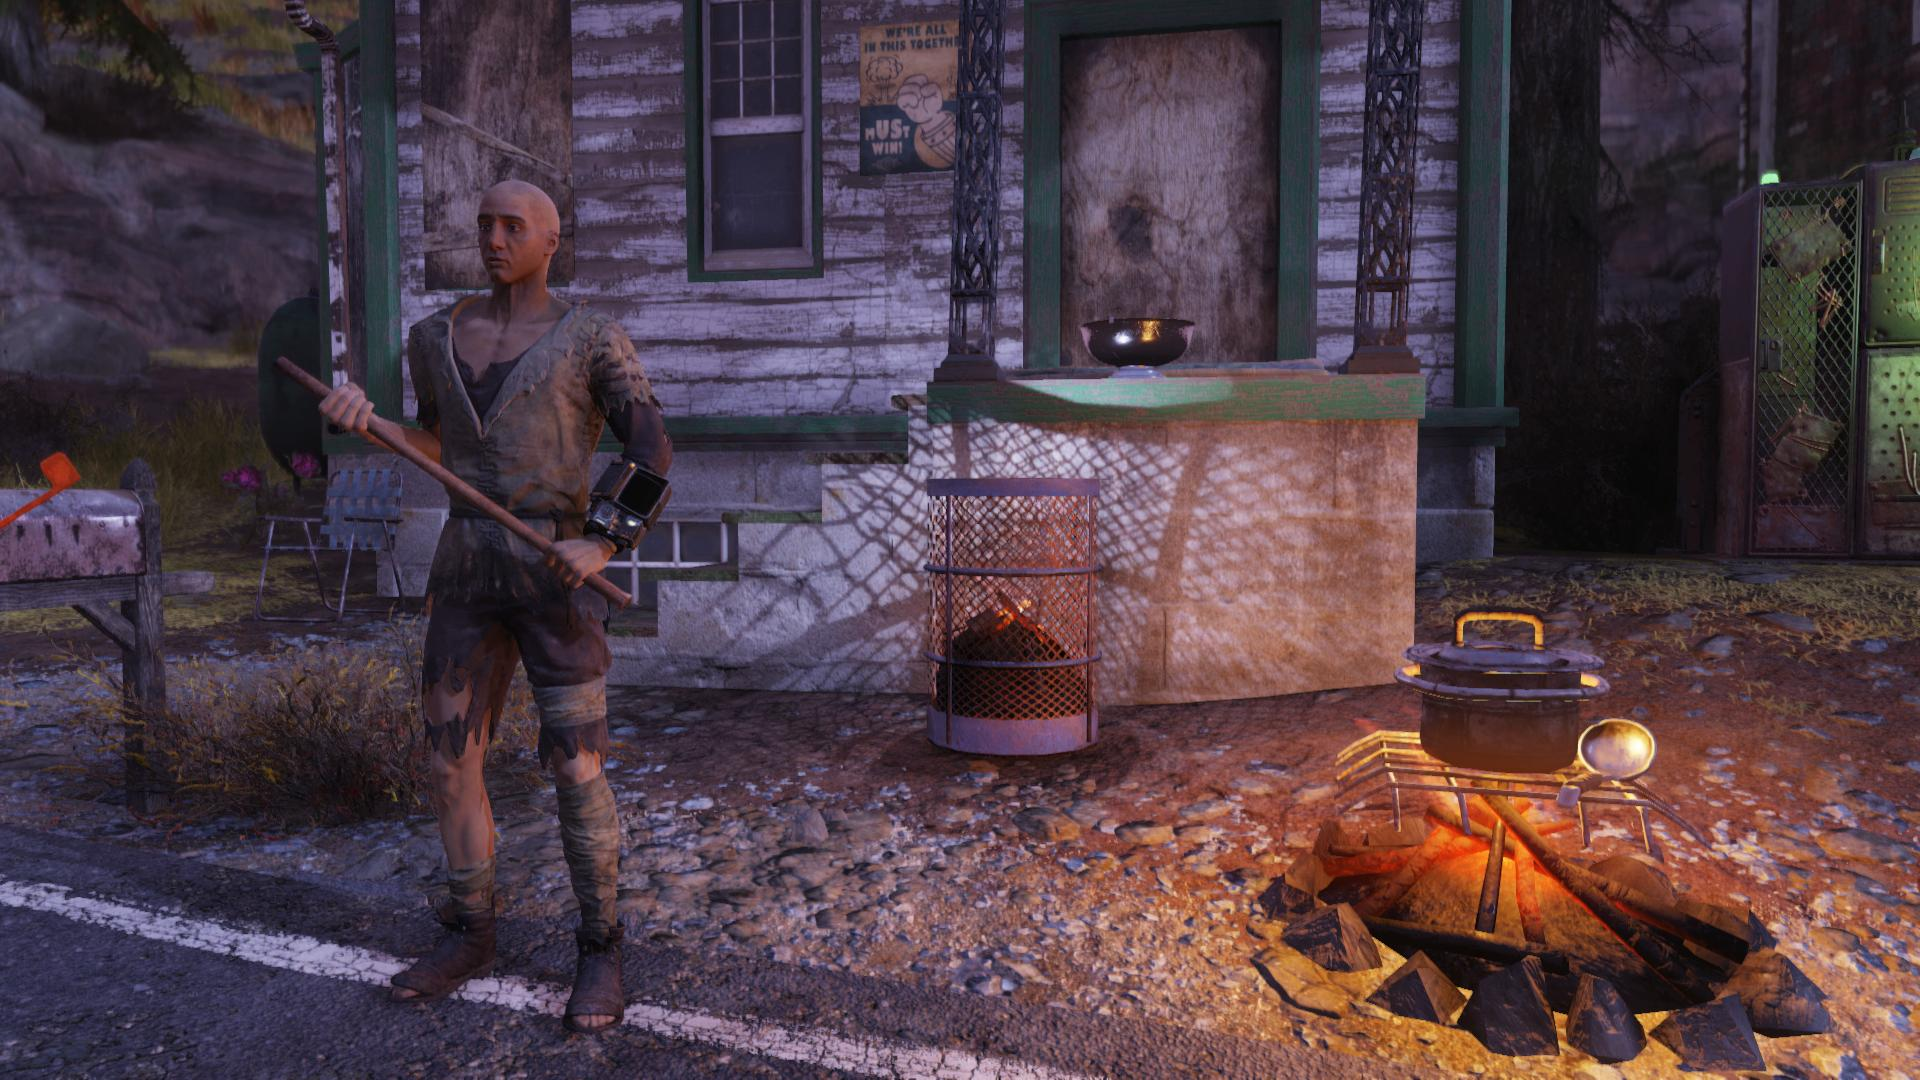 a man dressed in tattered clothes holds a stick while standing by a campfire in front of a roadside house in Fallout 76